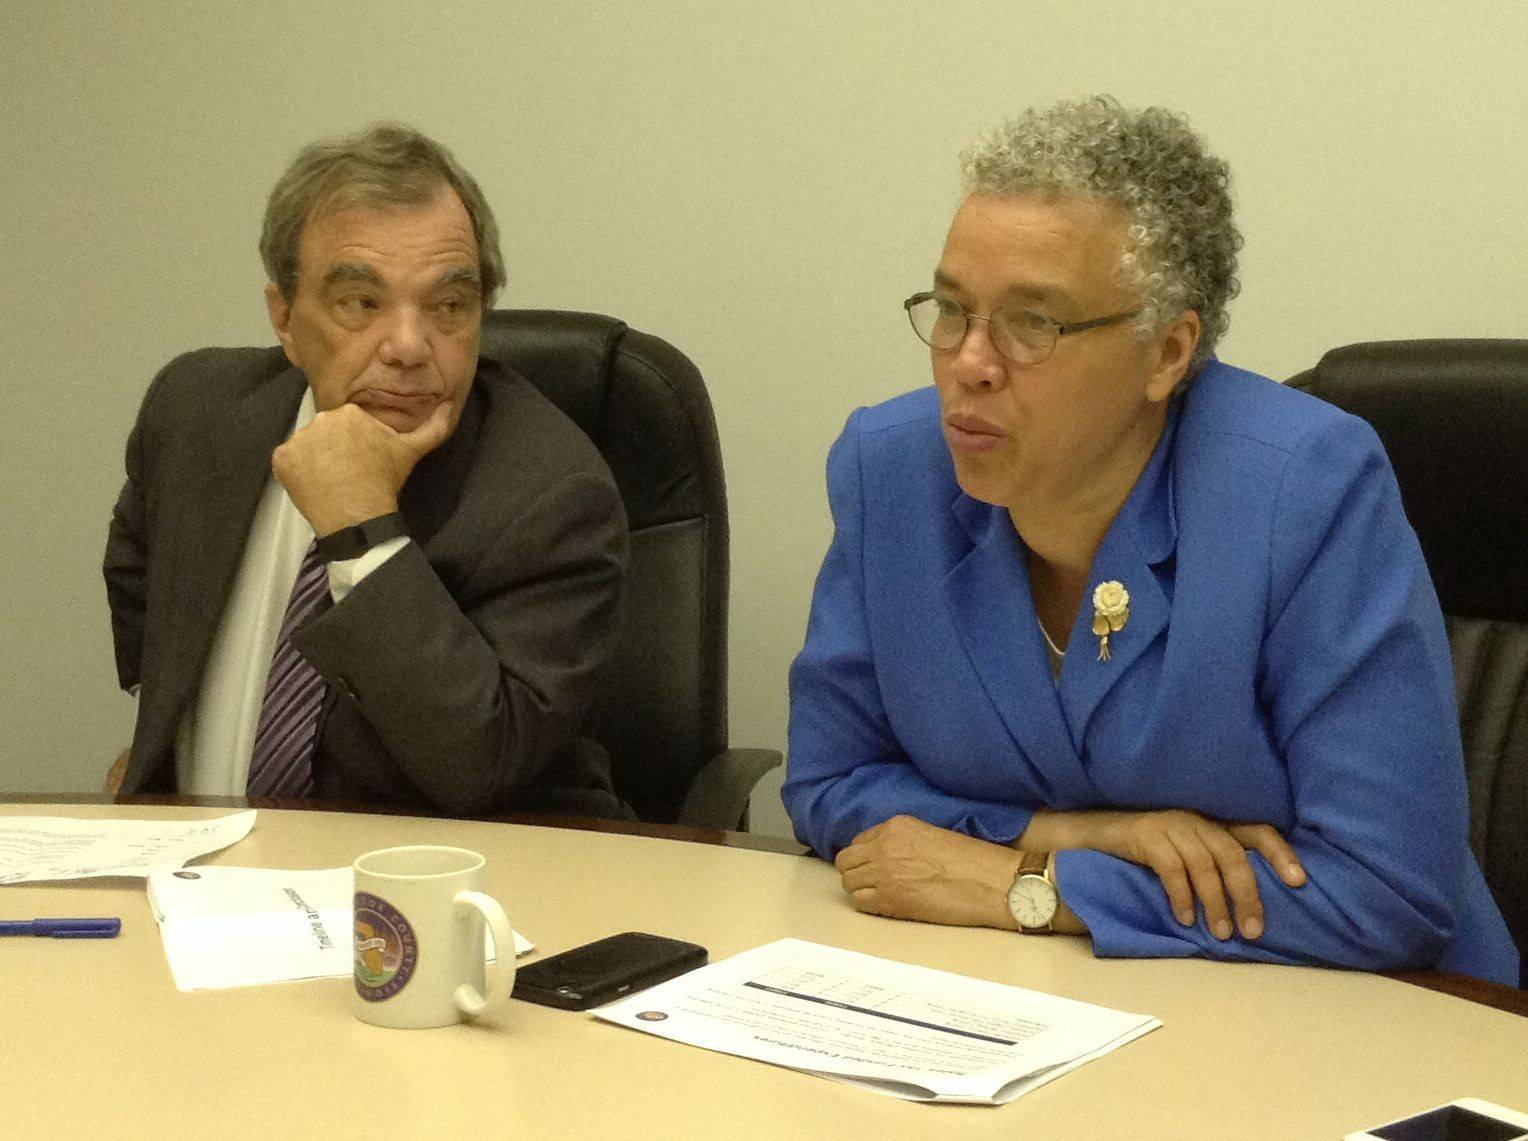 Cook County Board President Toni Preckwinkle and Finance Committee Chairman John Daley discuss a proposed sales tax increase during a meeting Tuesday with the Daily Herald Editorial Board.